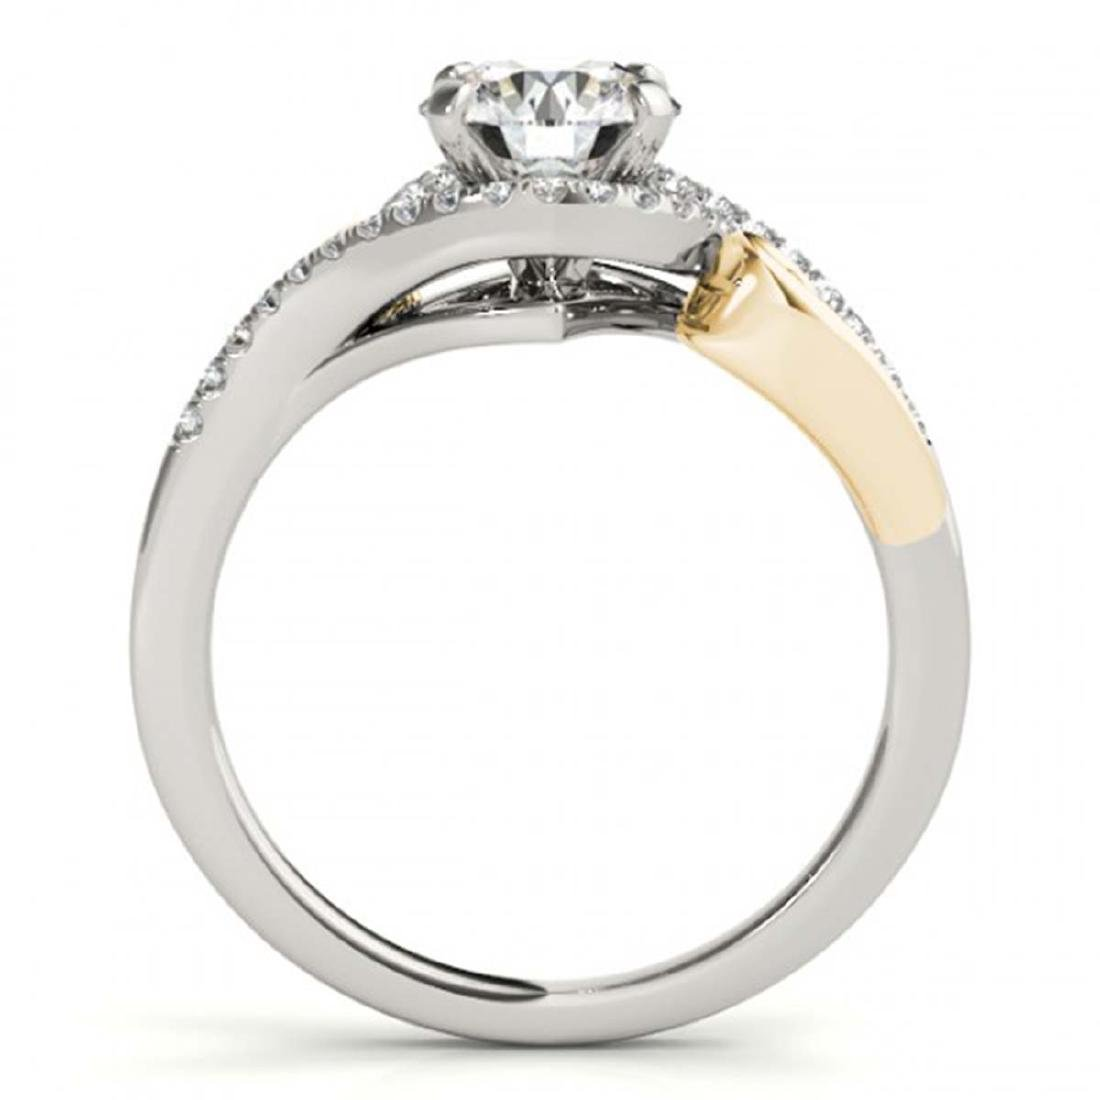 1.25 ctw VS/SI Diamond Solitaire Halo Ring 14K White & - 2